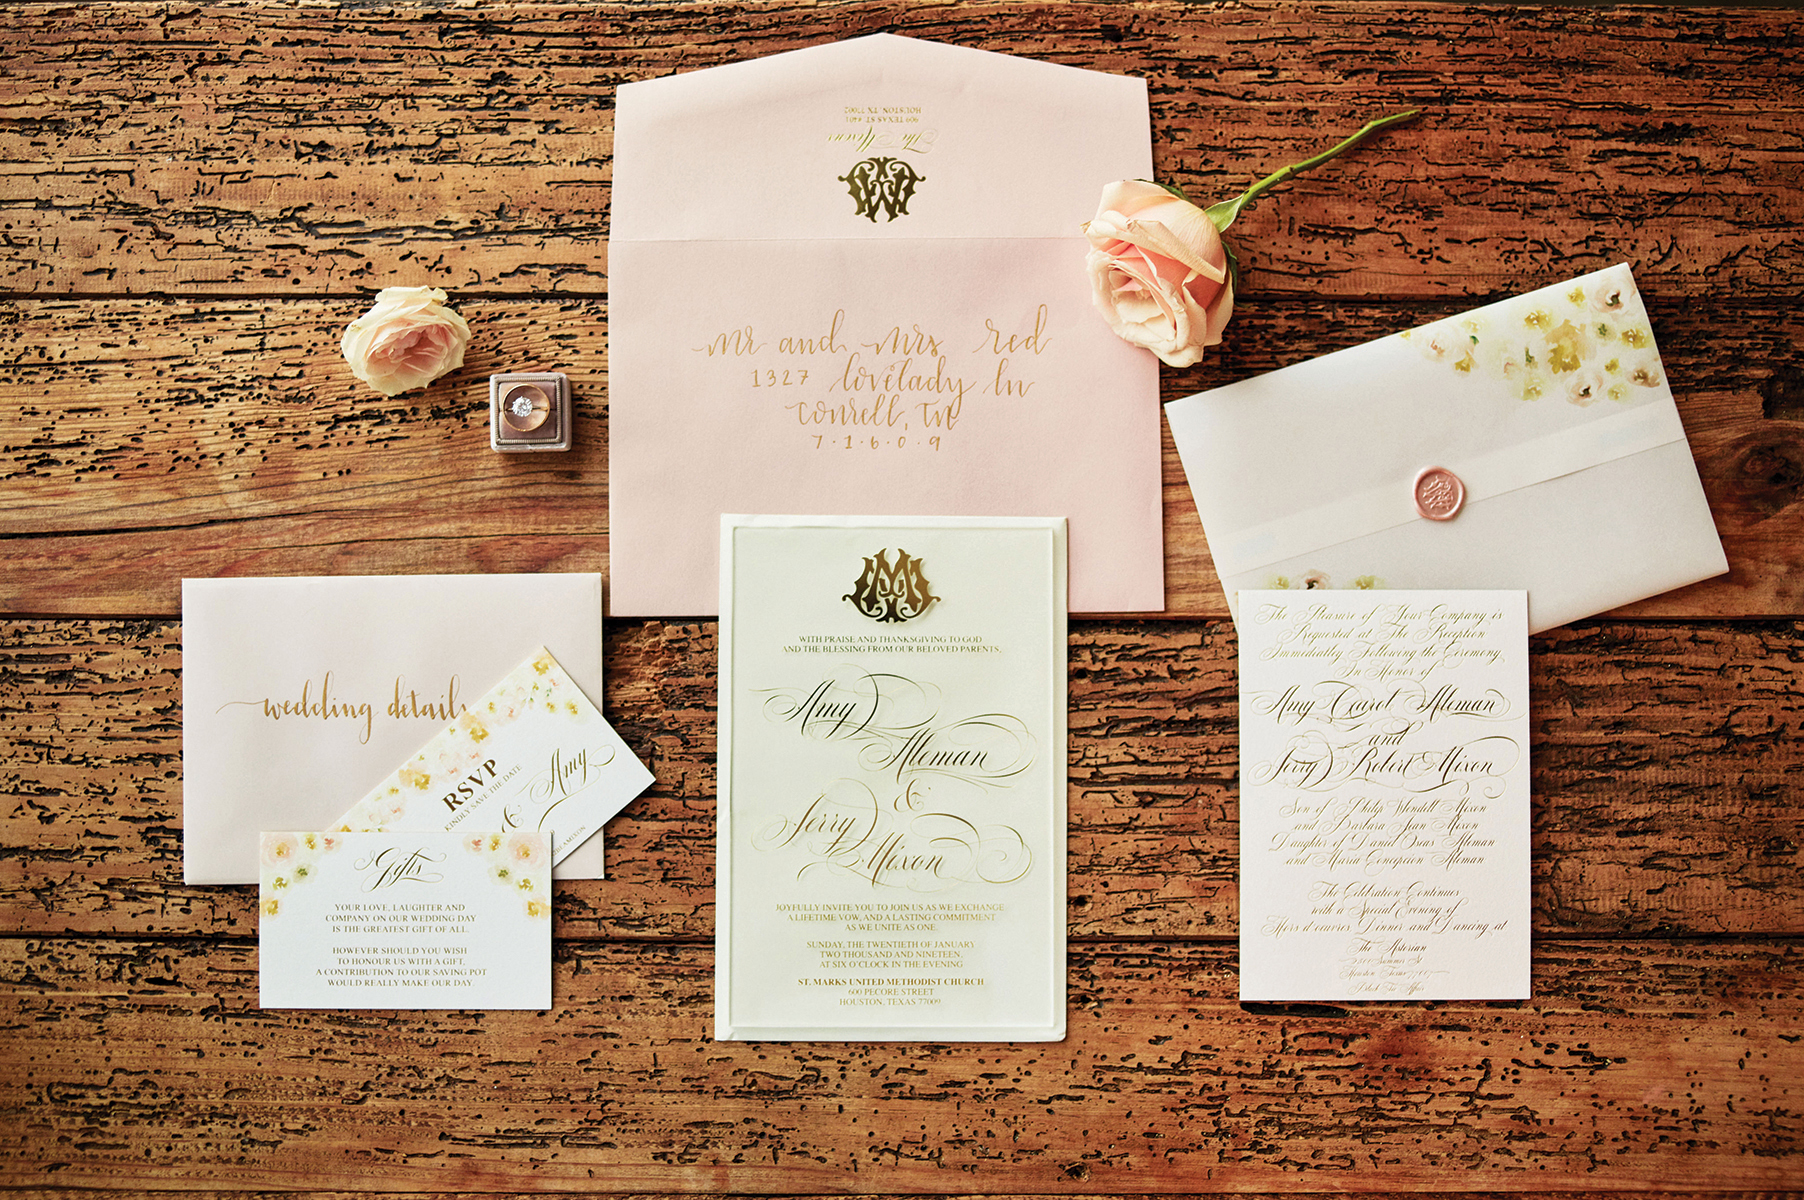 invites - wedding invitations flatlay